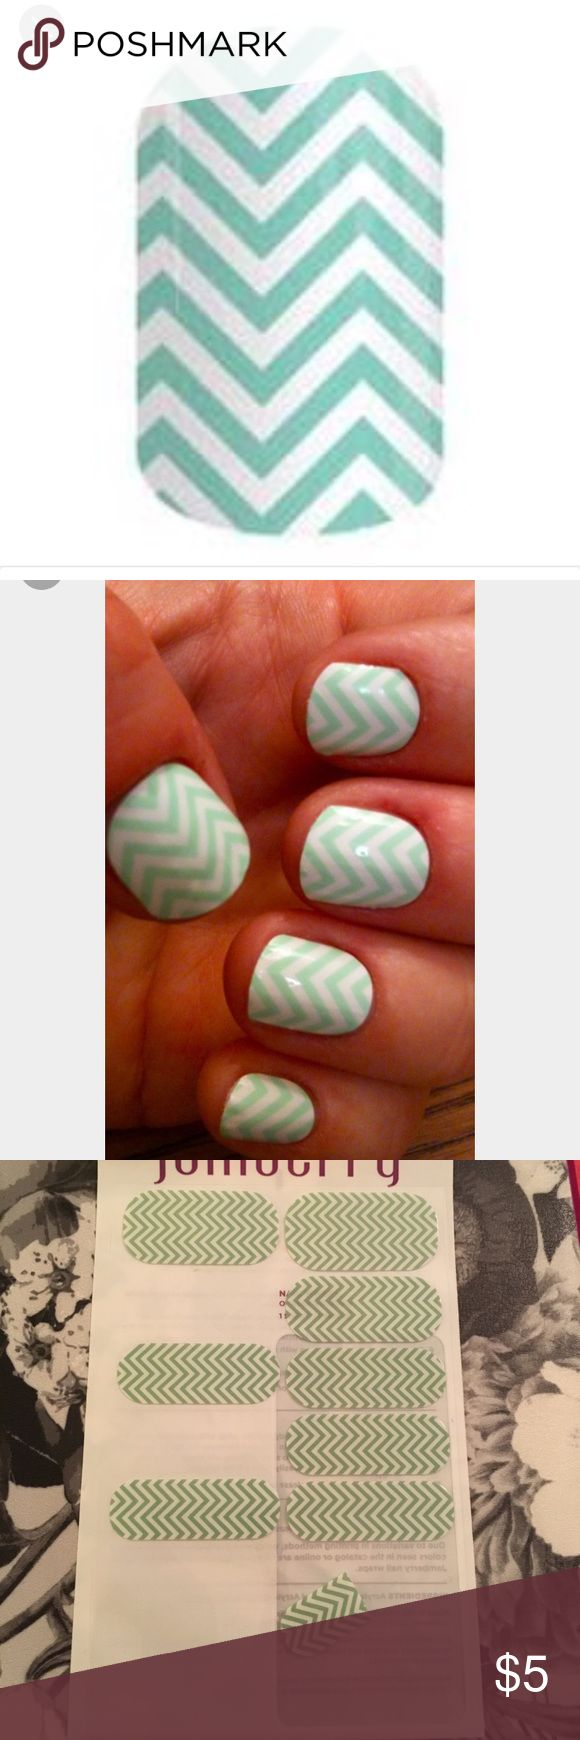 Jamberry mint chevron partial sheet Used for a couple manicures, still has use for pedicure and samples. Jamberry Makeup